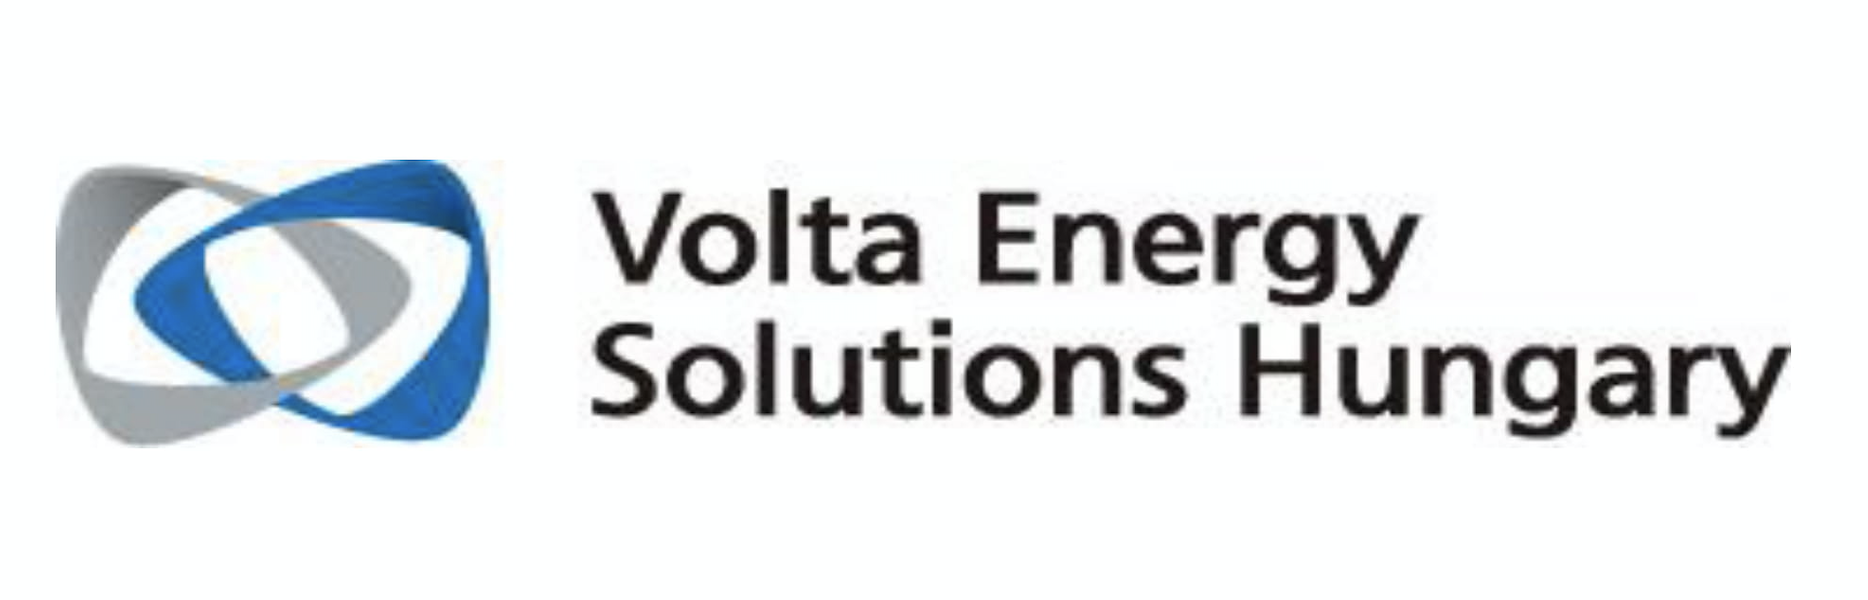 Volta Energy Solutions Hungary Kft.